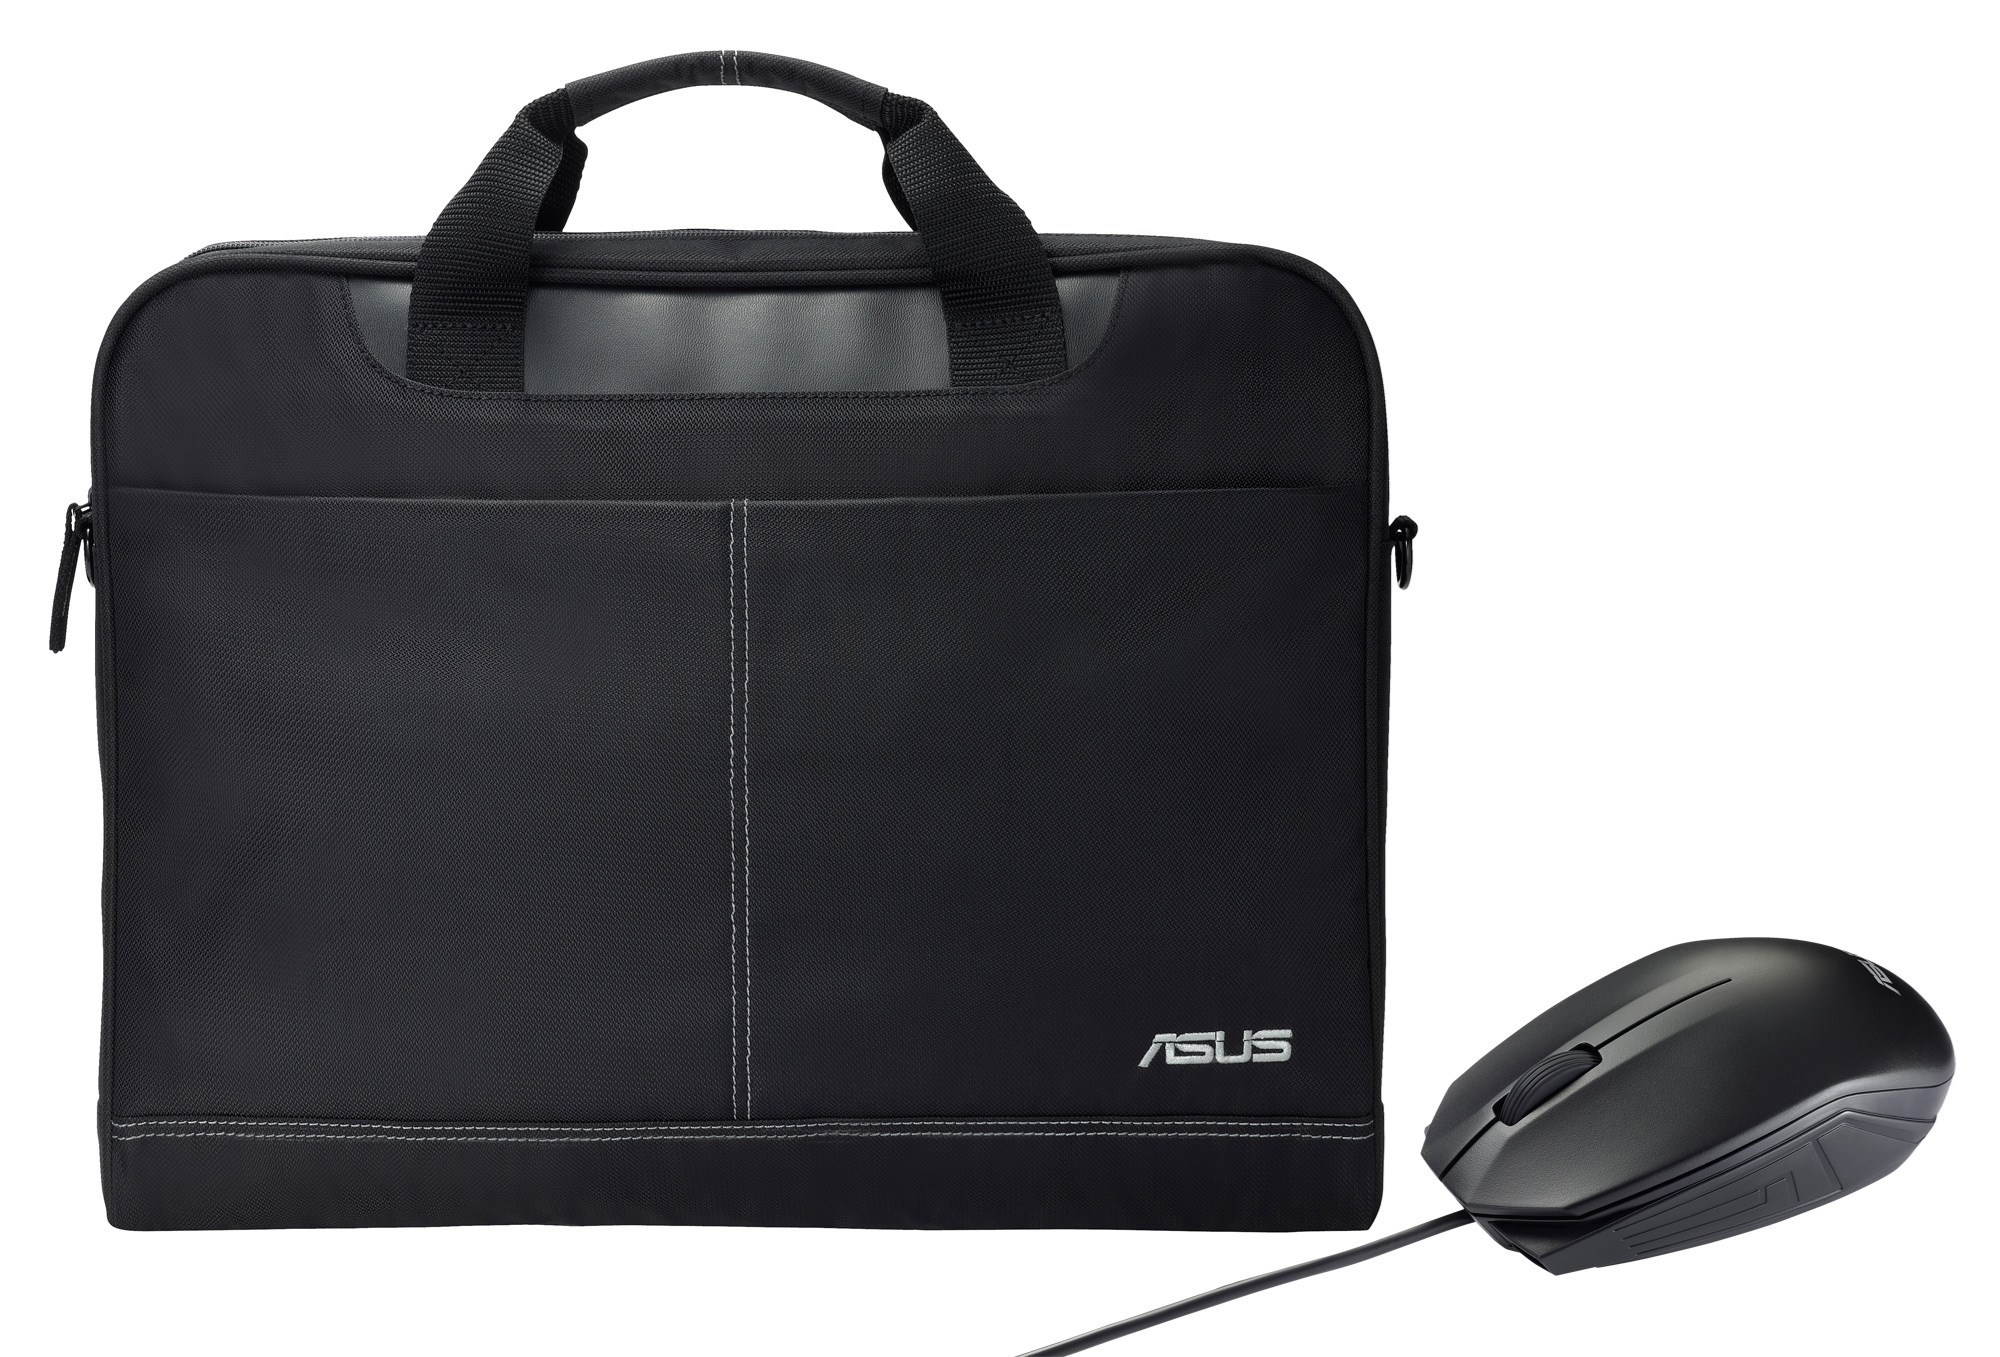 3a1054ce753d ASUS NEREUS Carry Case and UT280 Mouse